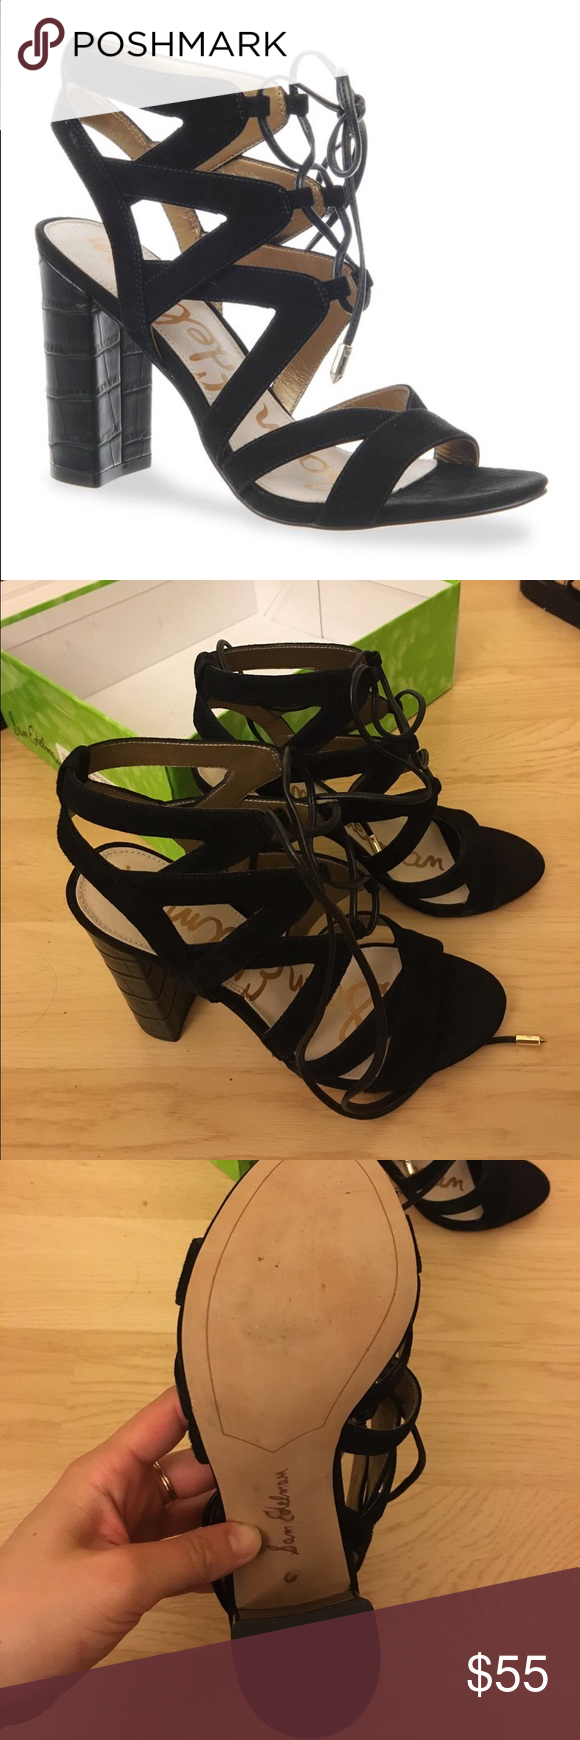 BRAND NEW Sam Edelman yardley size 6 Sam Edelman yardley in black suede. Never worn. Come with box. NEW. PERFECT CONDITION. Sam Edelman Shoes Sandals